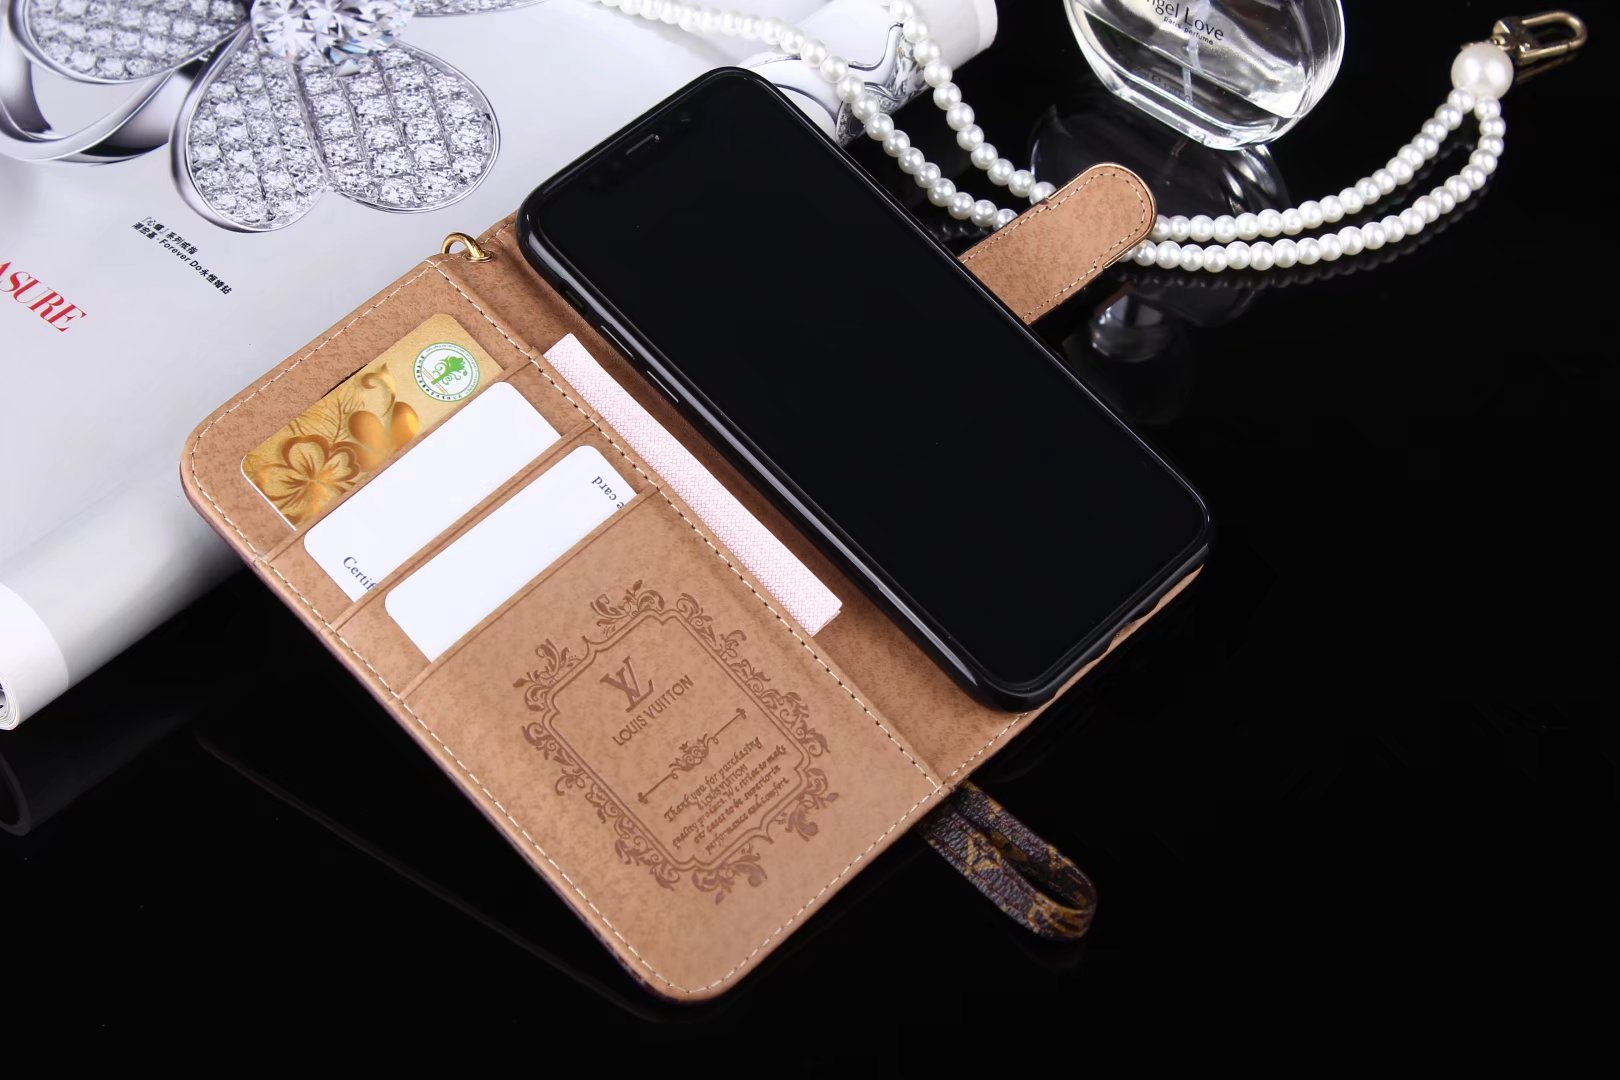 iphone X phone cases covers for iphone X Louis Vuitton iPhone X case personal phone covers apple iphone 8 cover make your own case for iphone 6 best case for 8 cases for iphone 6 cheap designer iphone 6 cases